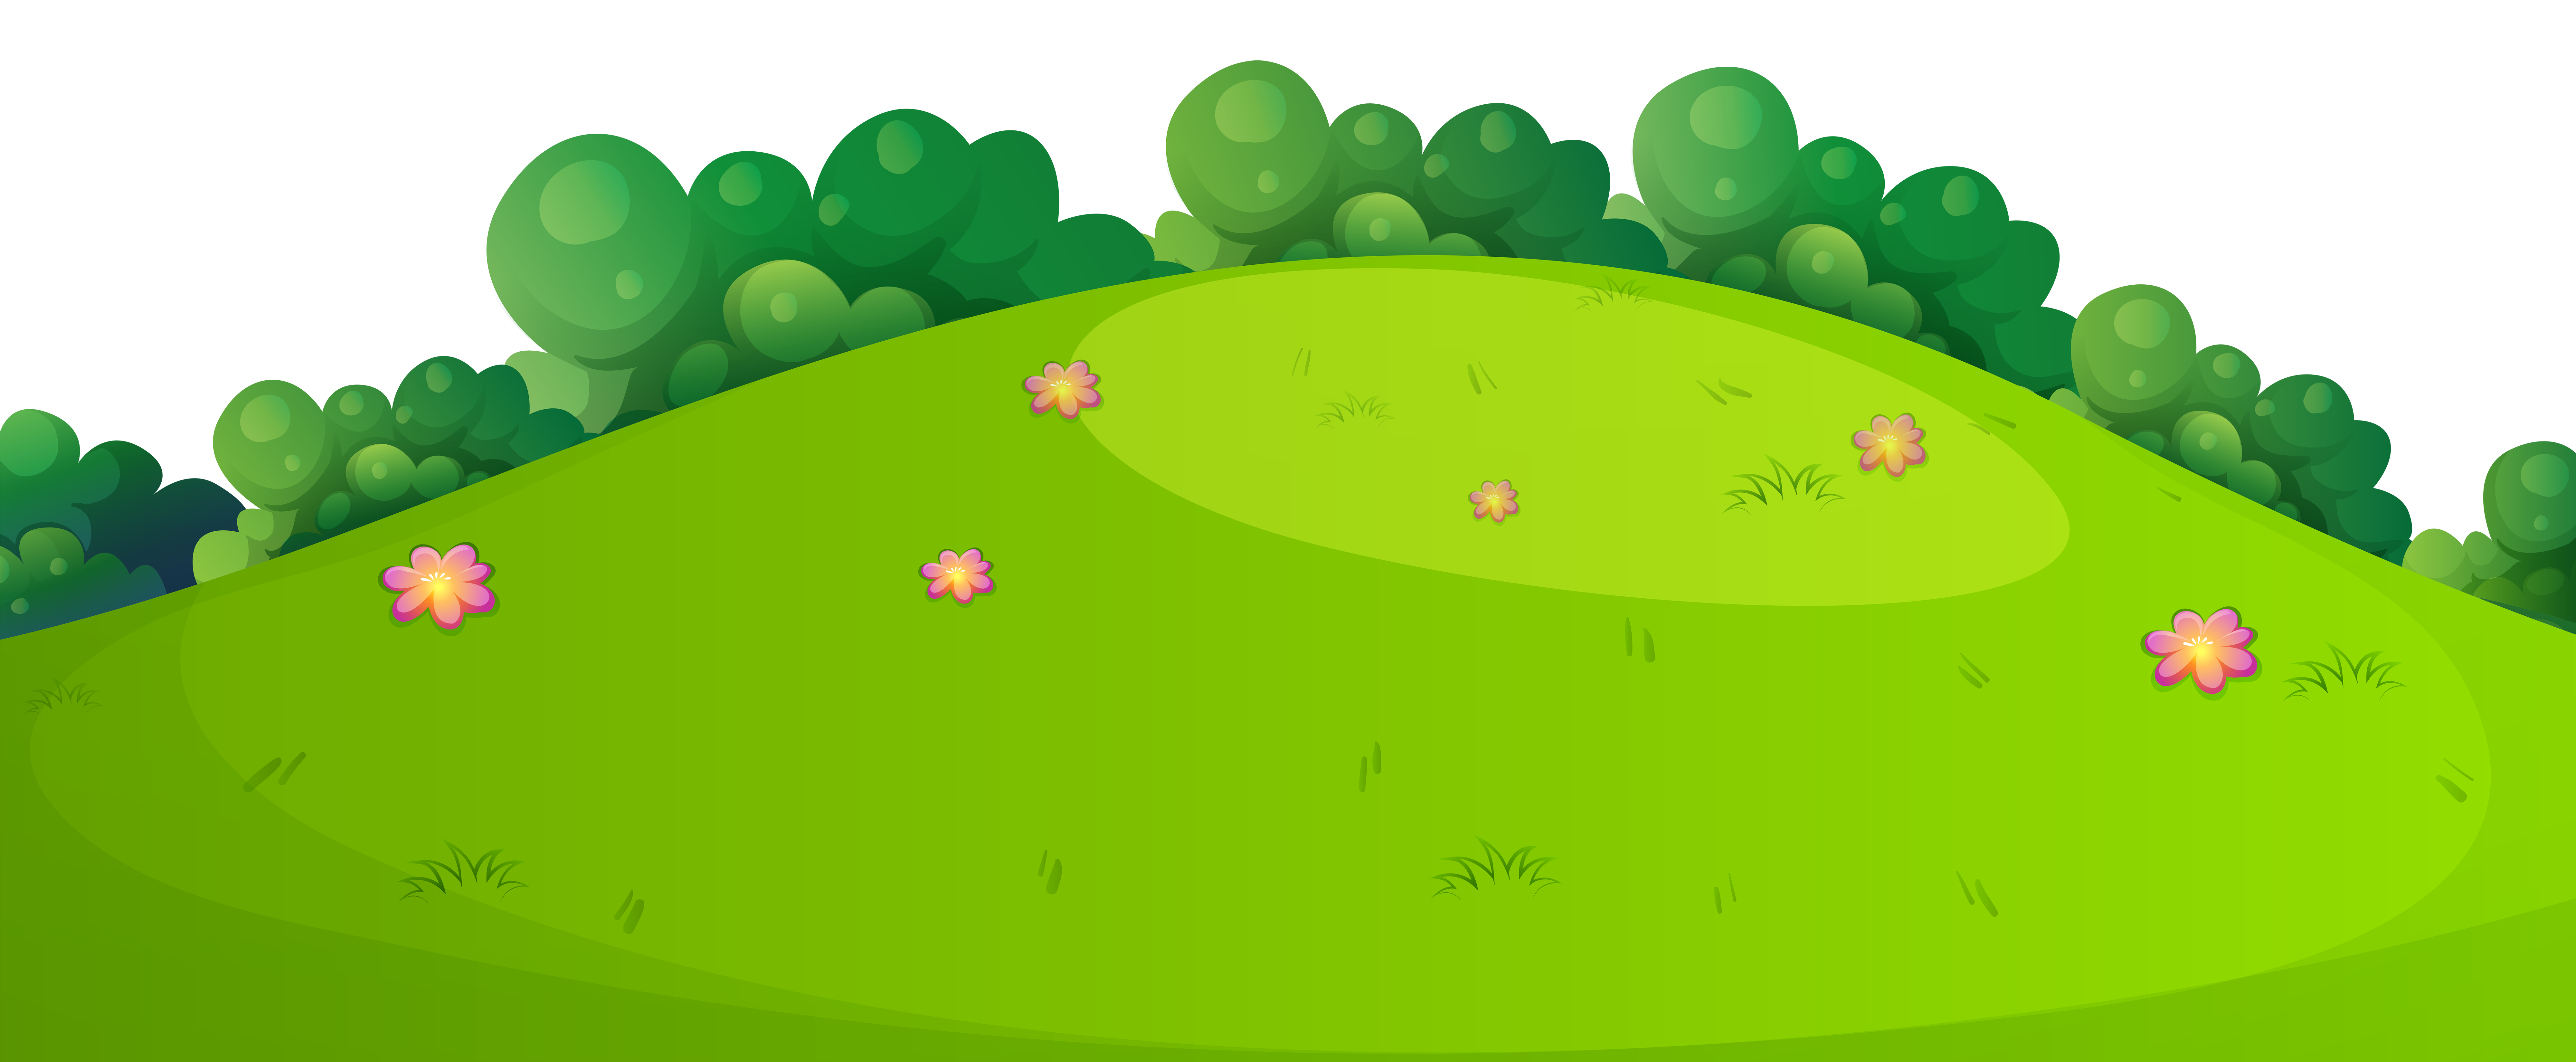 Meadow clipart #7, Download drawings